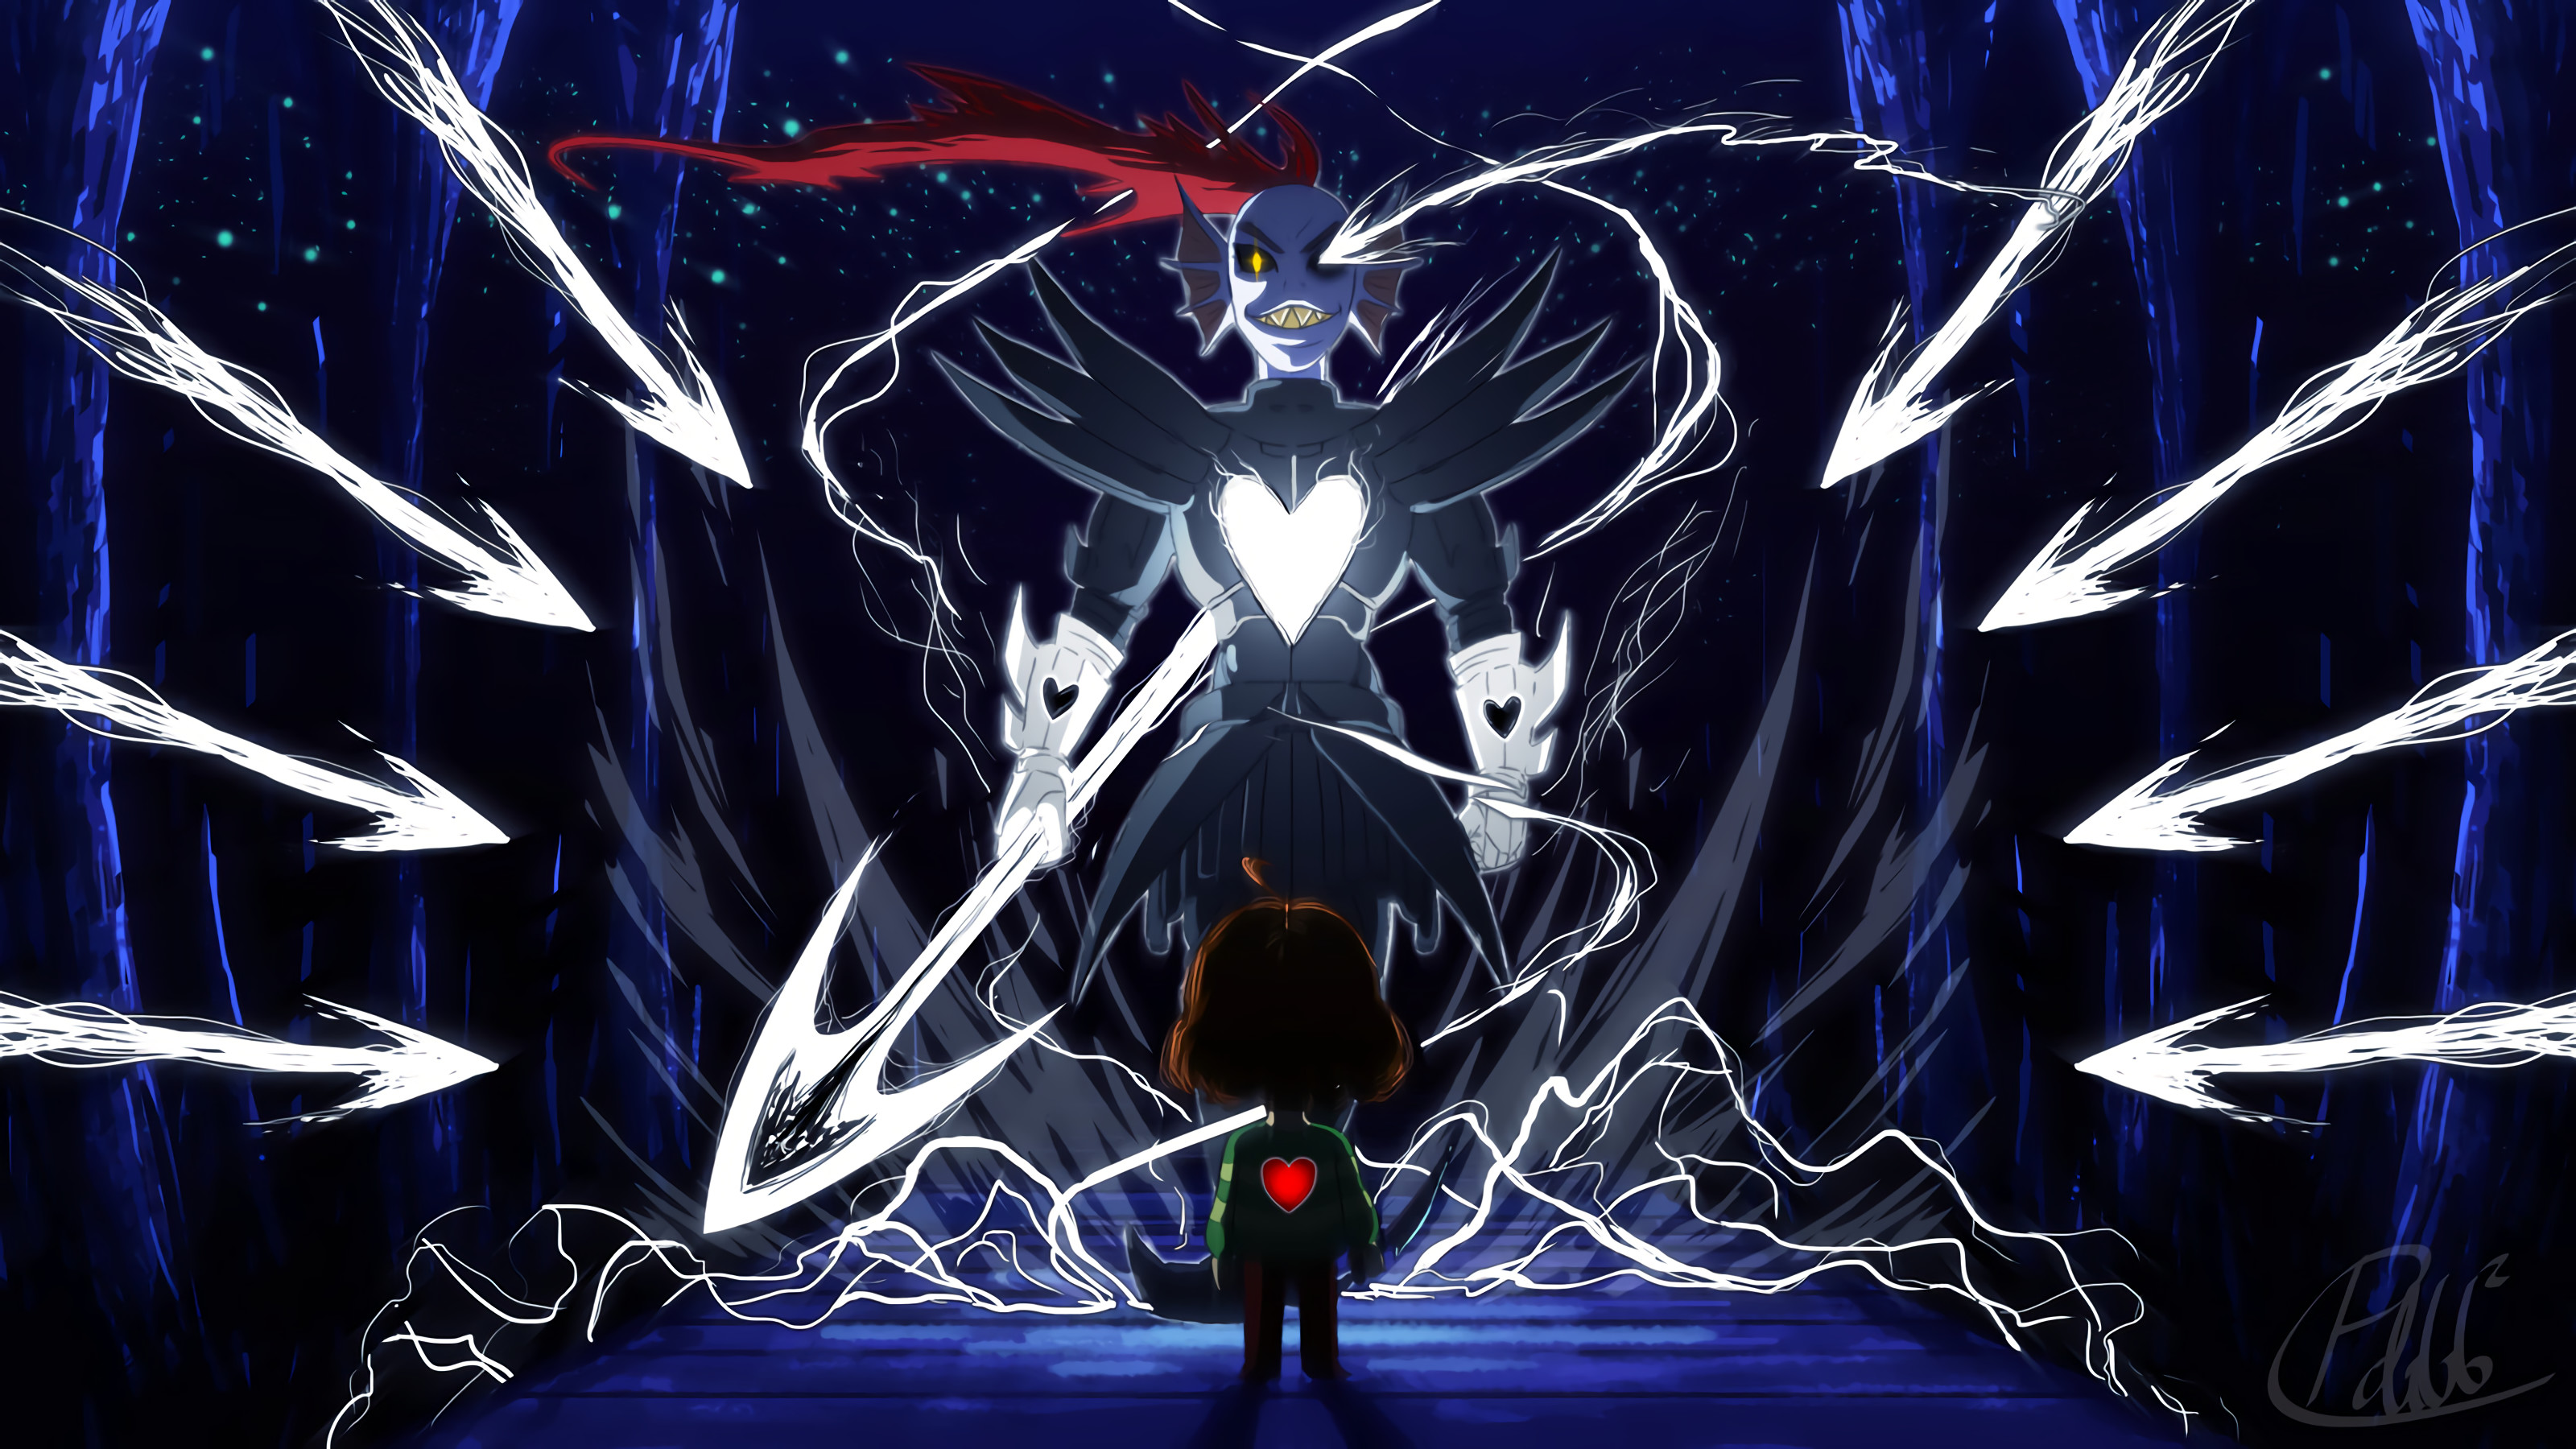 Undertale Undyne Undyne the Undying · HD Wallpaper | Background ID:731368